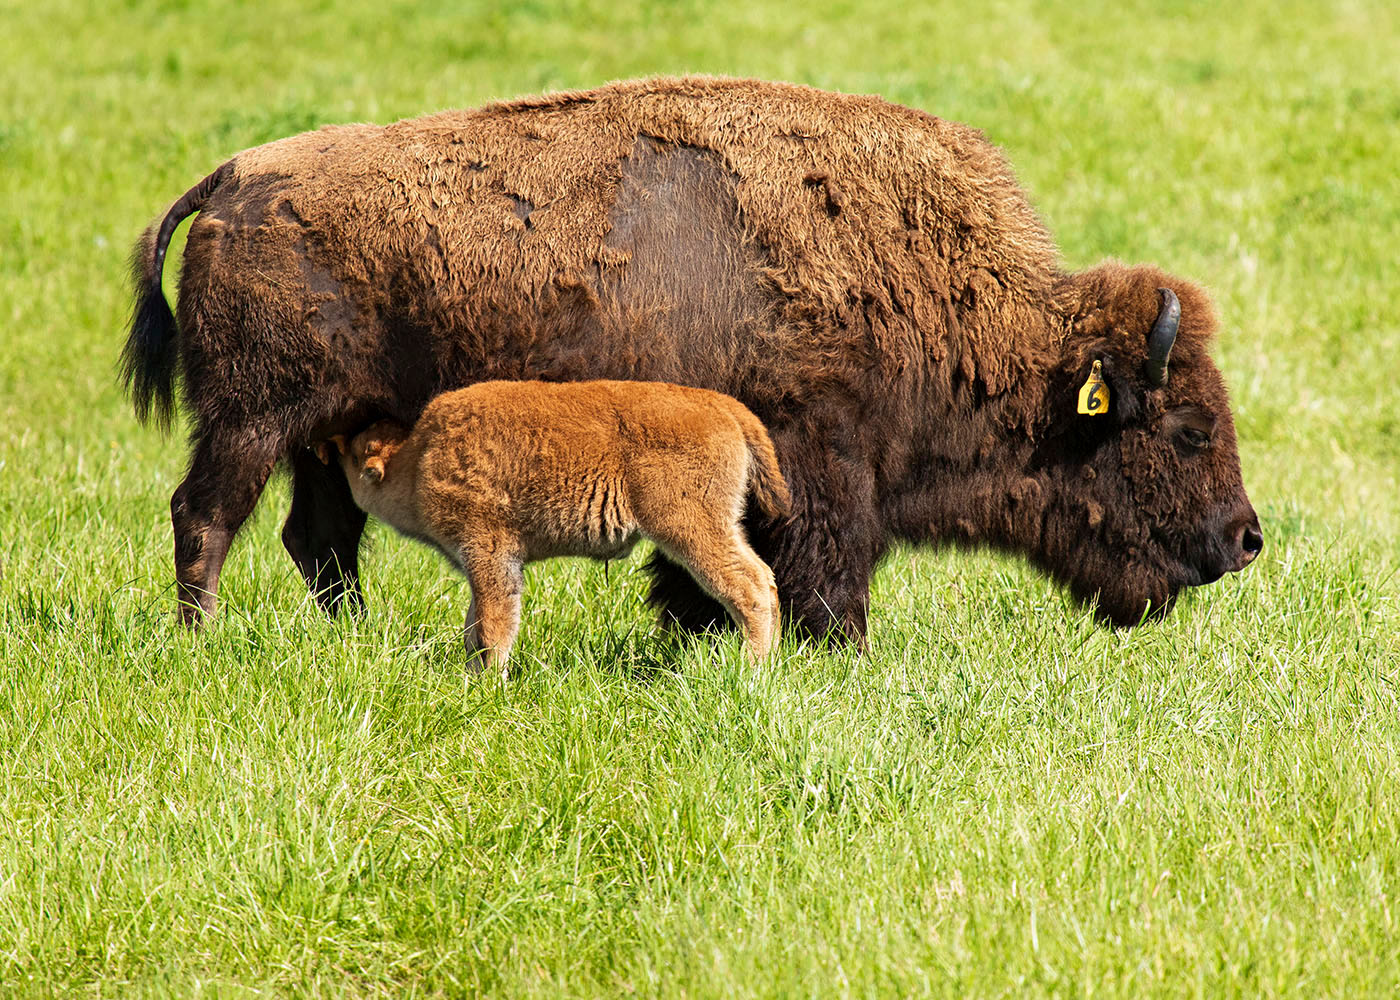 Mother nurses her child. nature, wildlife, animal, mammal, bison Photo: Marty Murphy